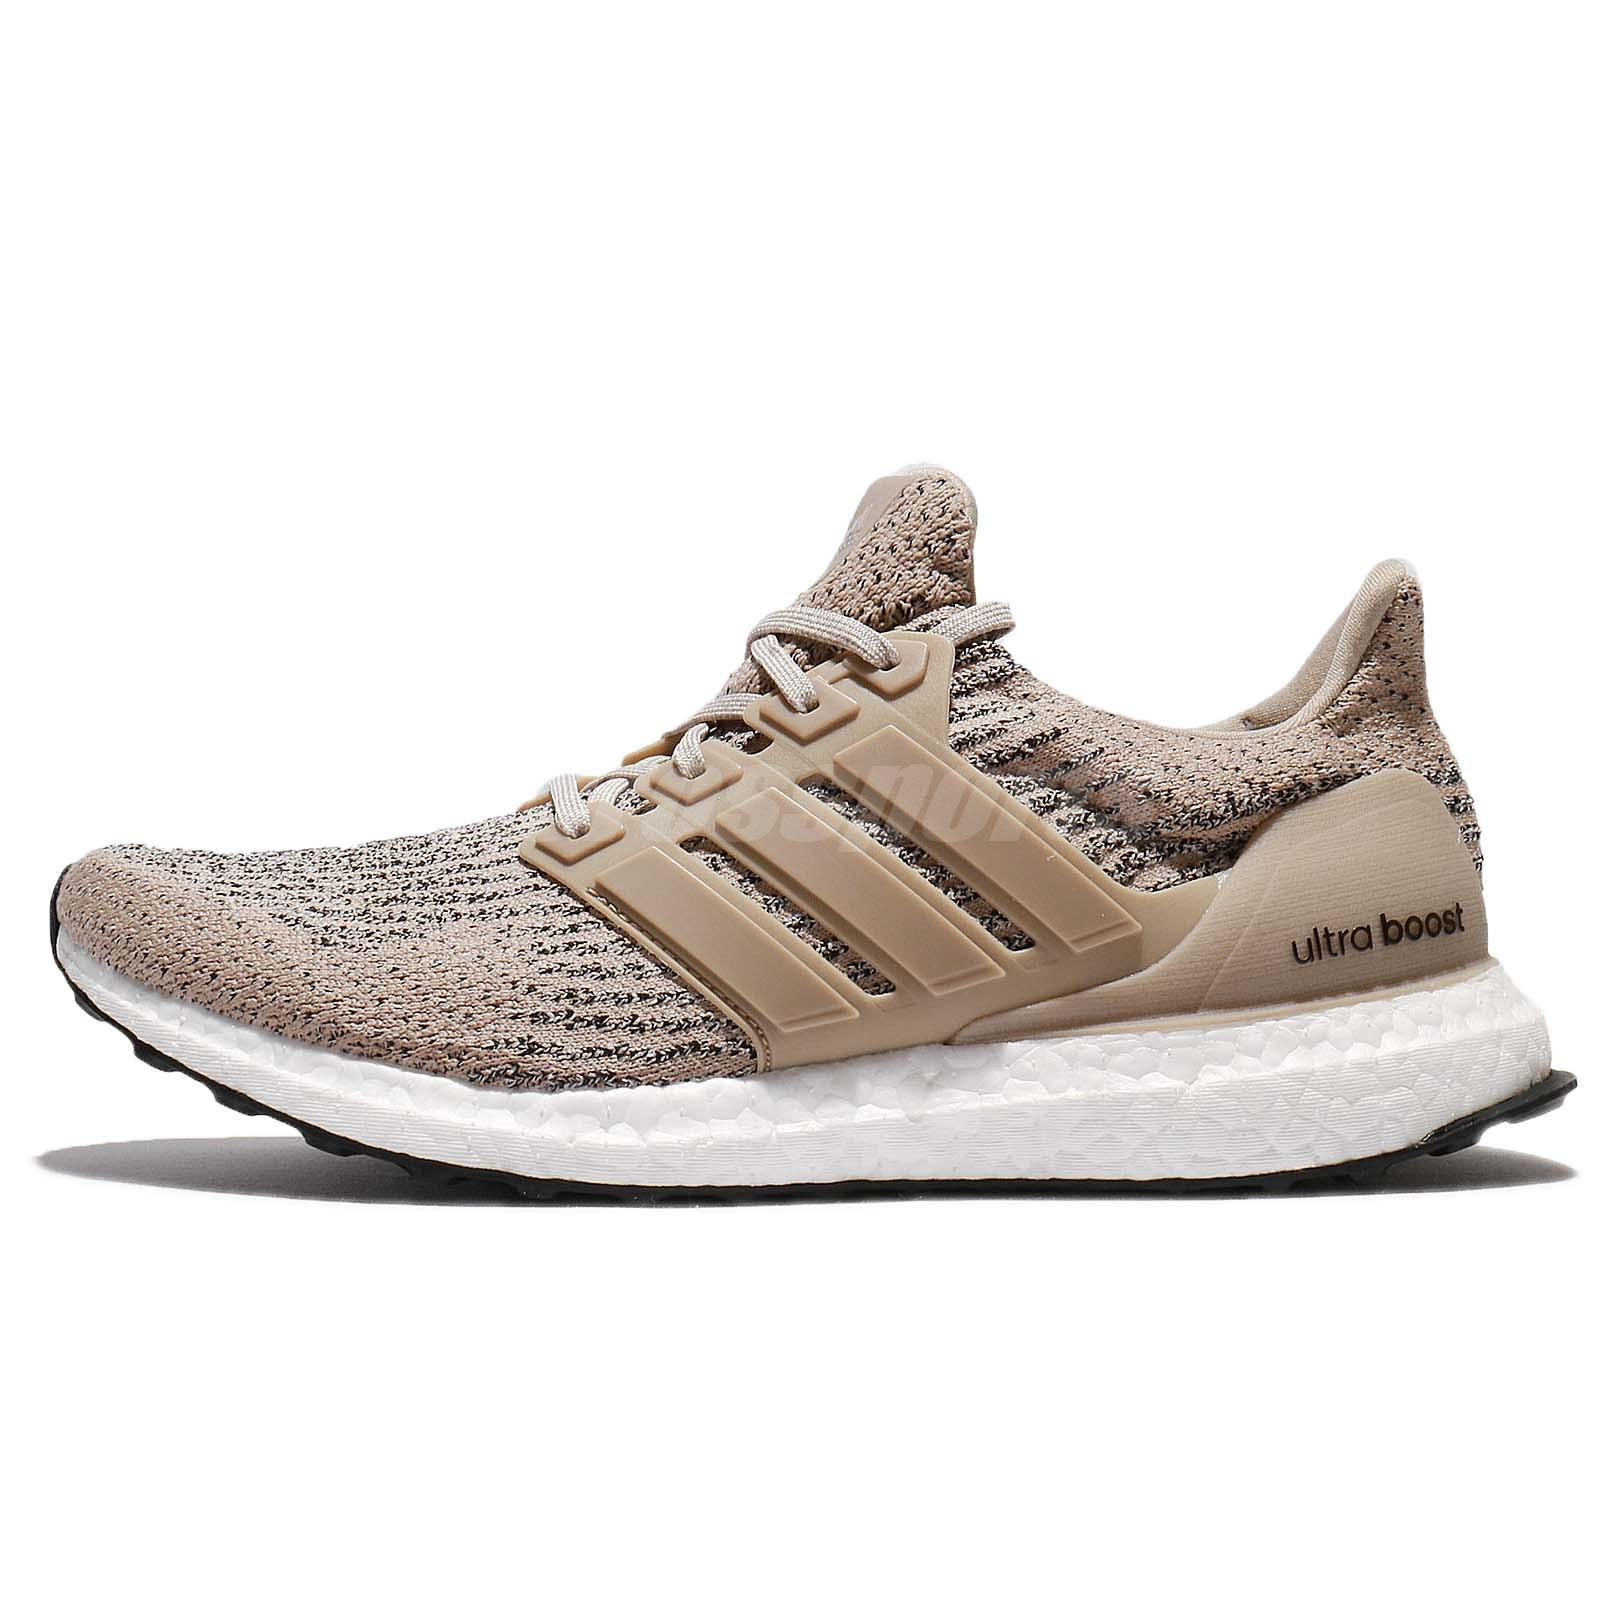 quality design 0dc42 74628 ... reduced adidas ultraboost 3.0 trace khaki clear brown men running shoes  sneakers cg3039 5ad56 2cfd1